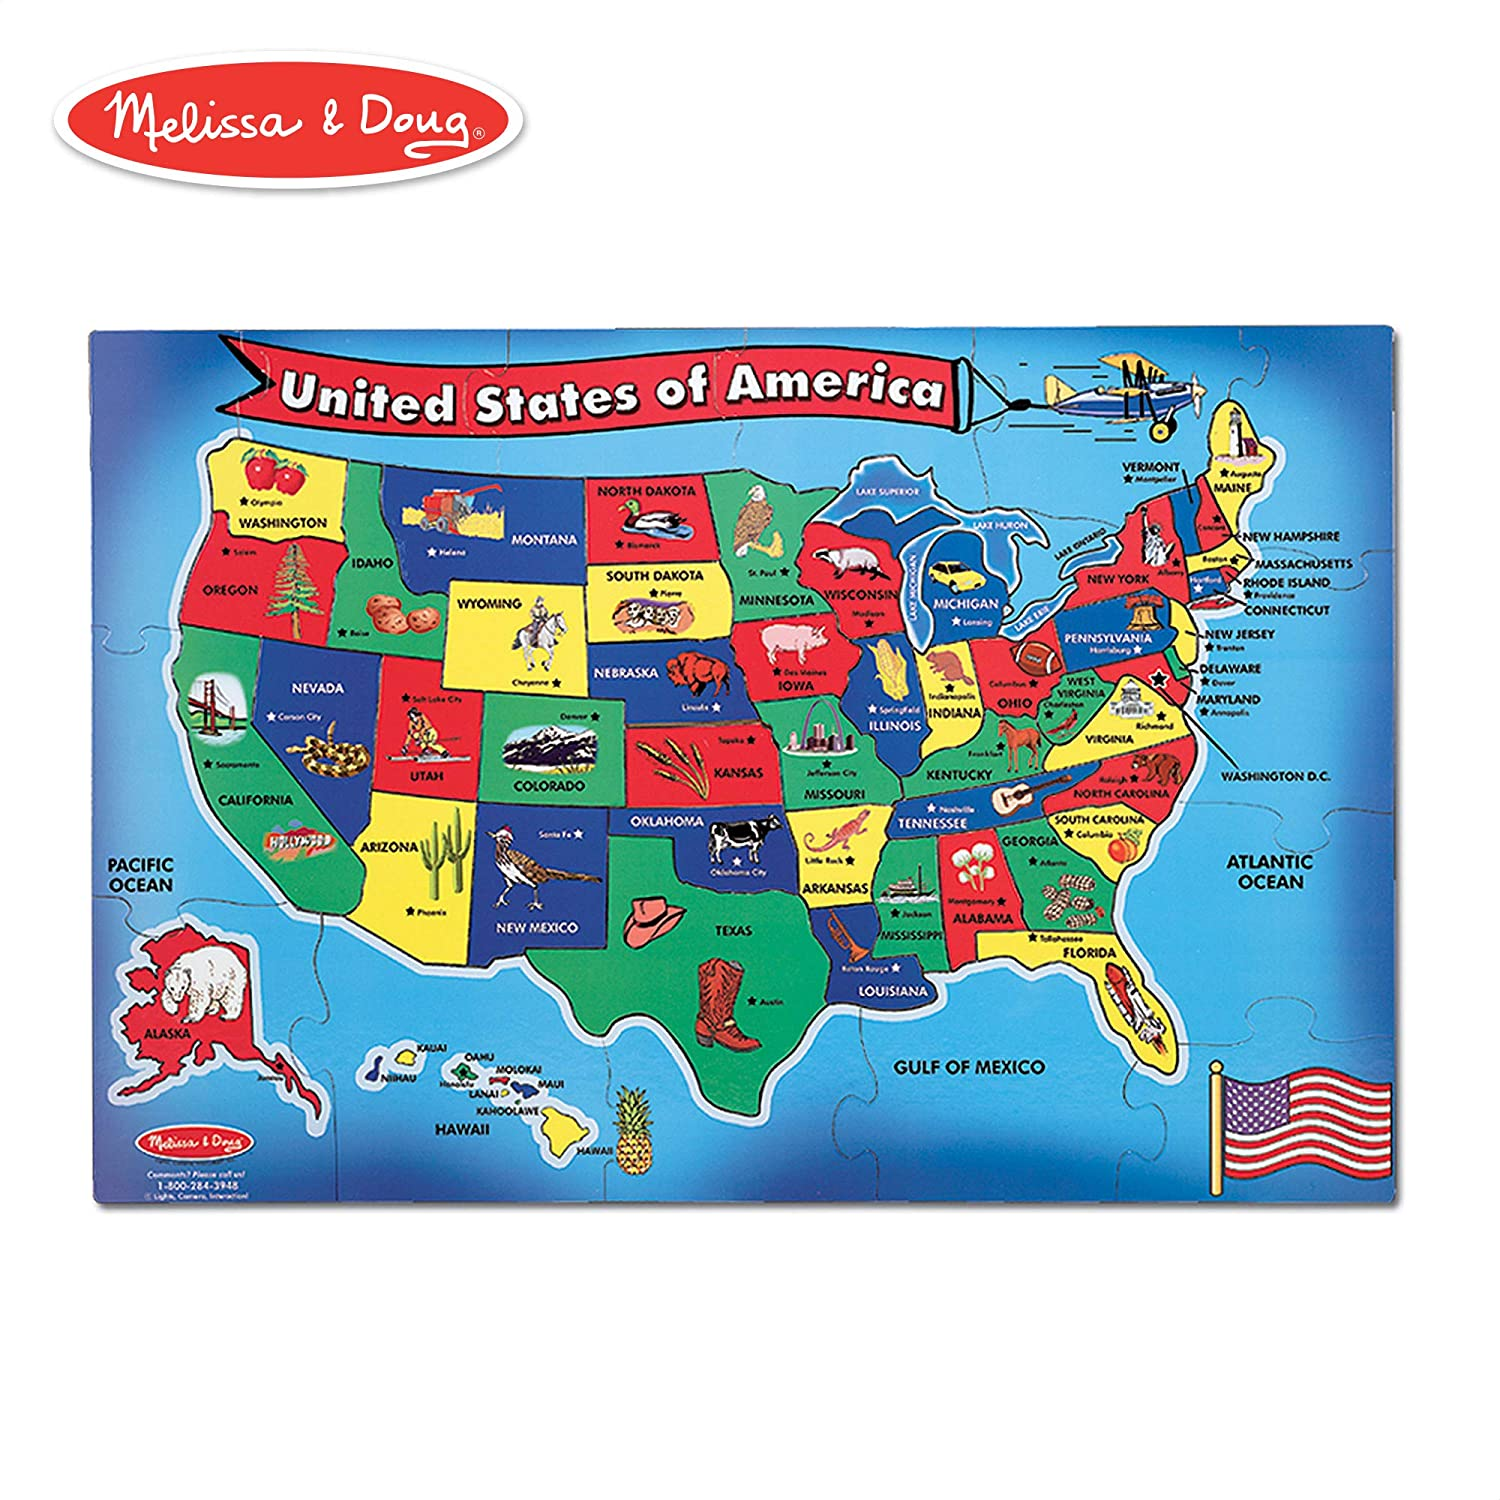 Real Map Of The United States.Melissa Doug Usa United States Map Floor Puzzle Wipe Clean Surface Teaches Geography Shapes 51 Pieces 24 L X 36 W